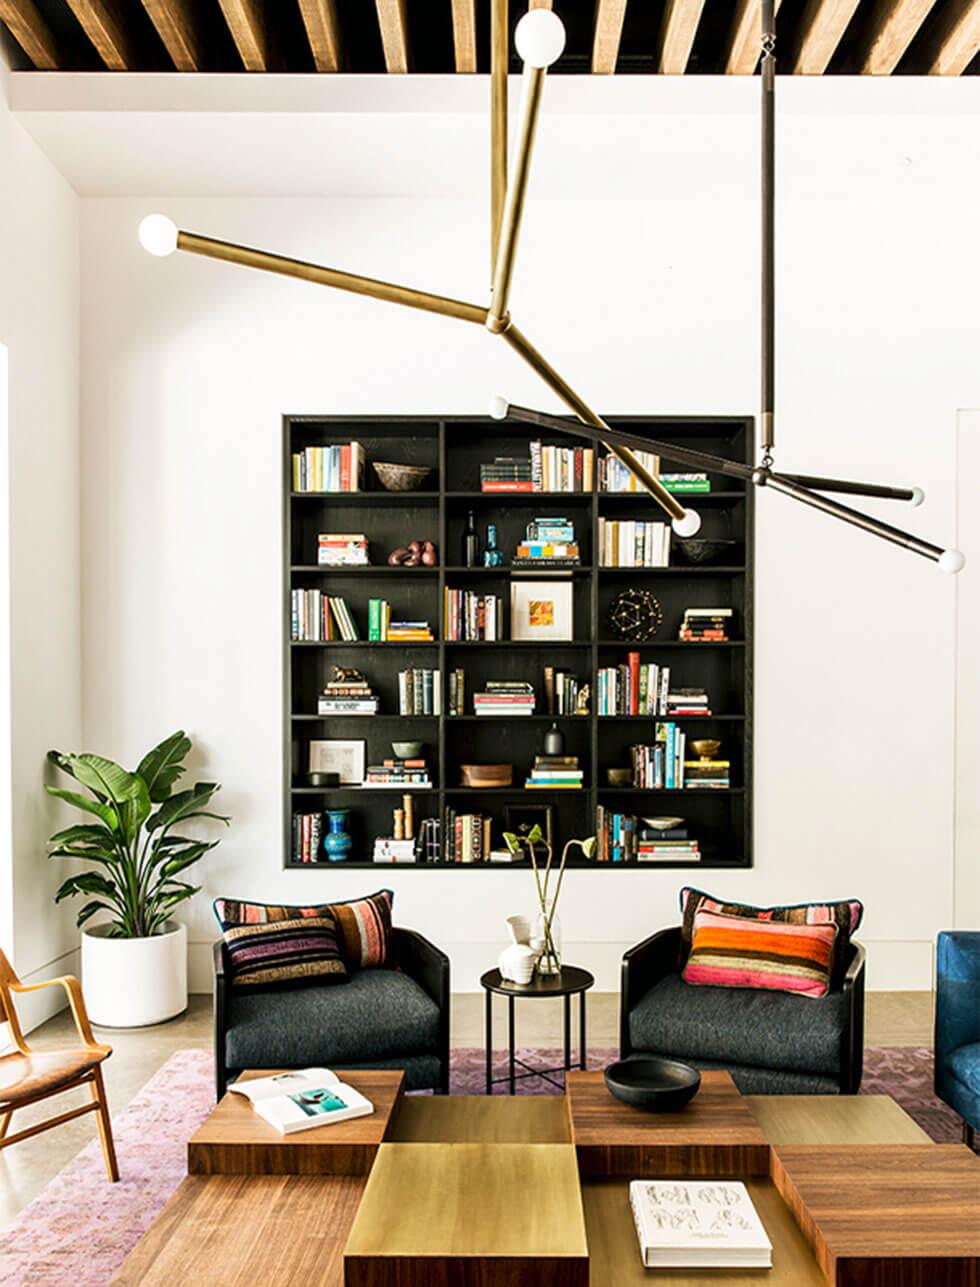 Living room with built bookshelf wall